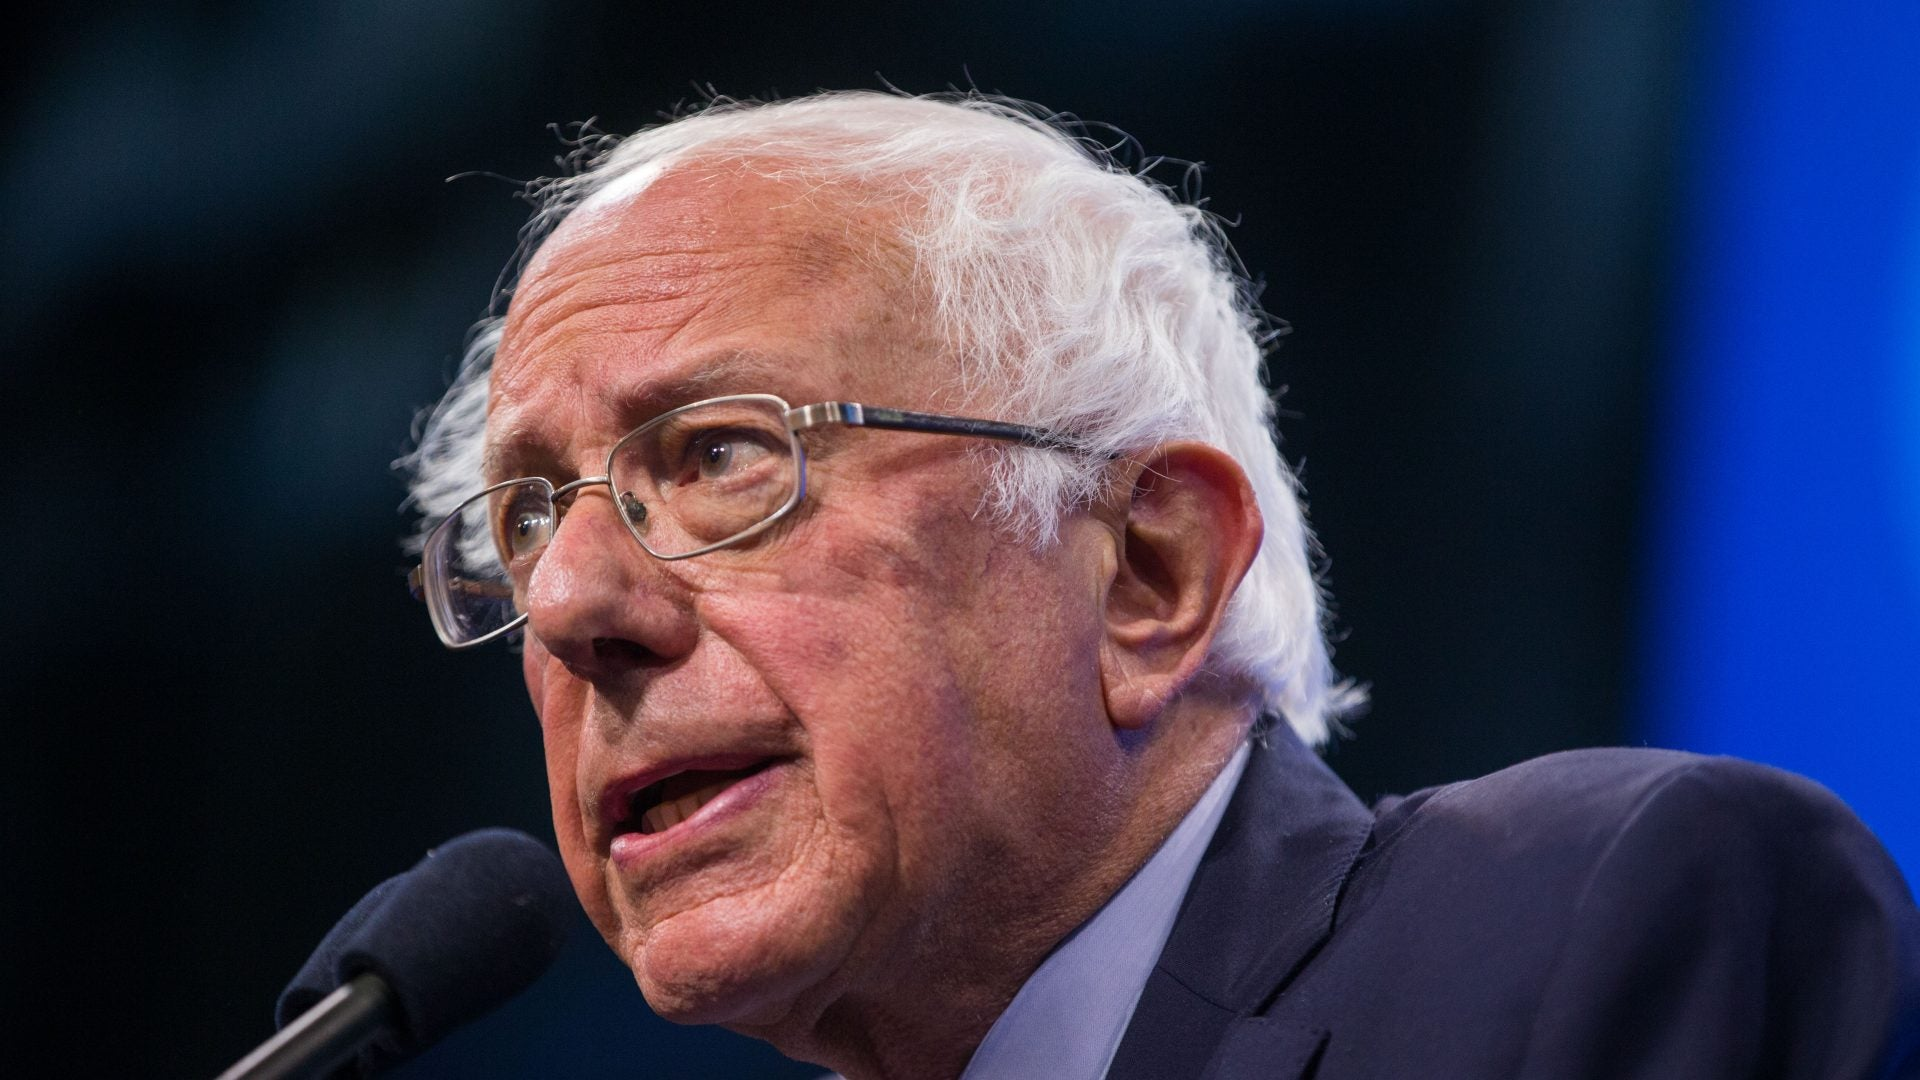 Opinion: If Bernie Sanders Hates The Media, His New Media Plan Is A Funny Way To Show It